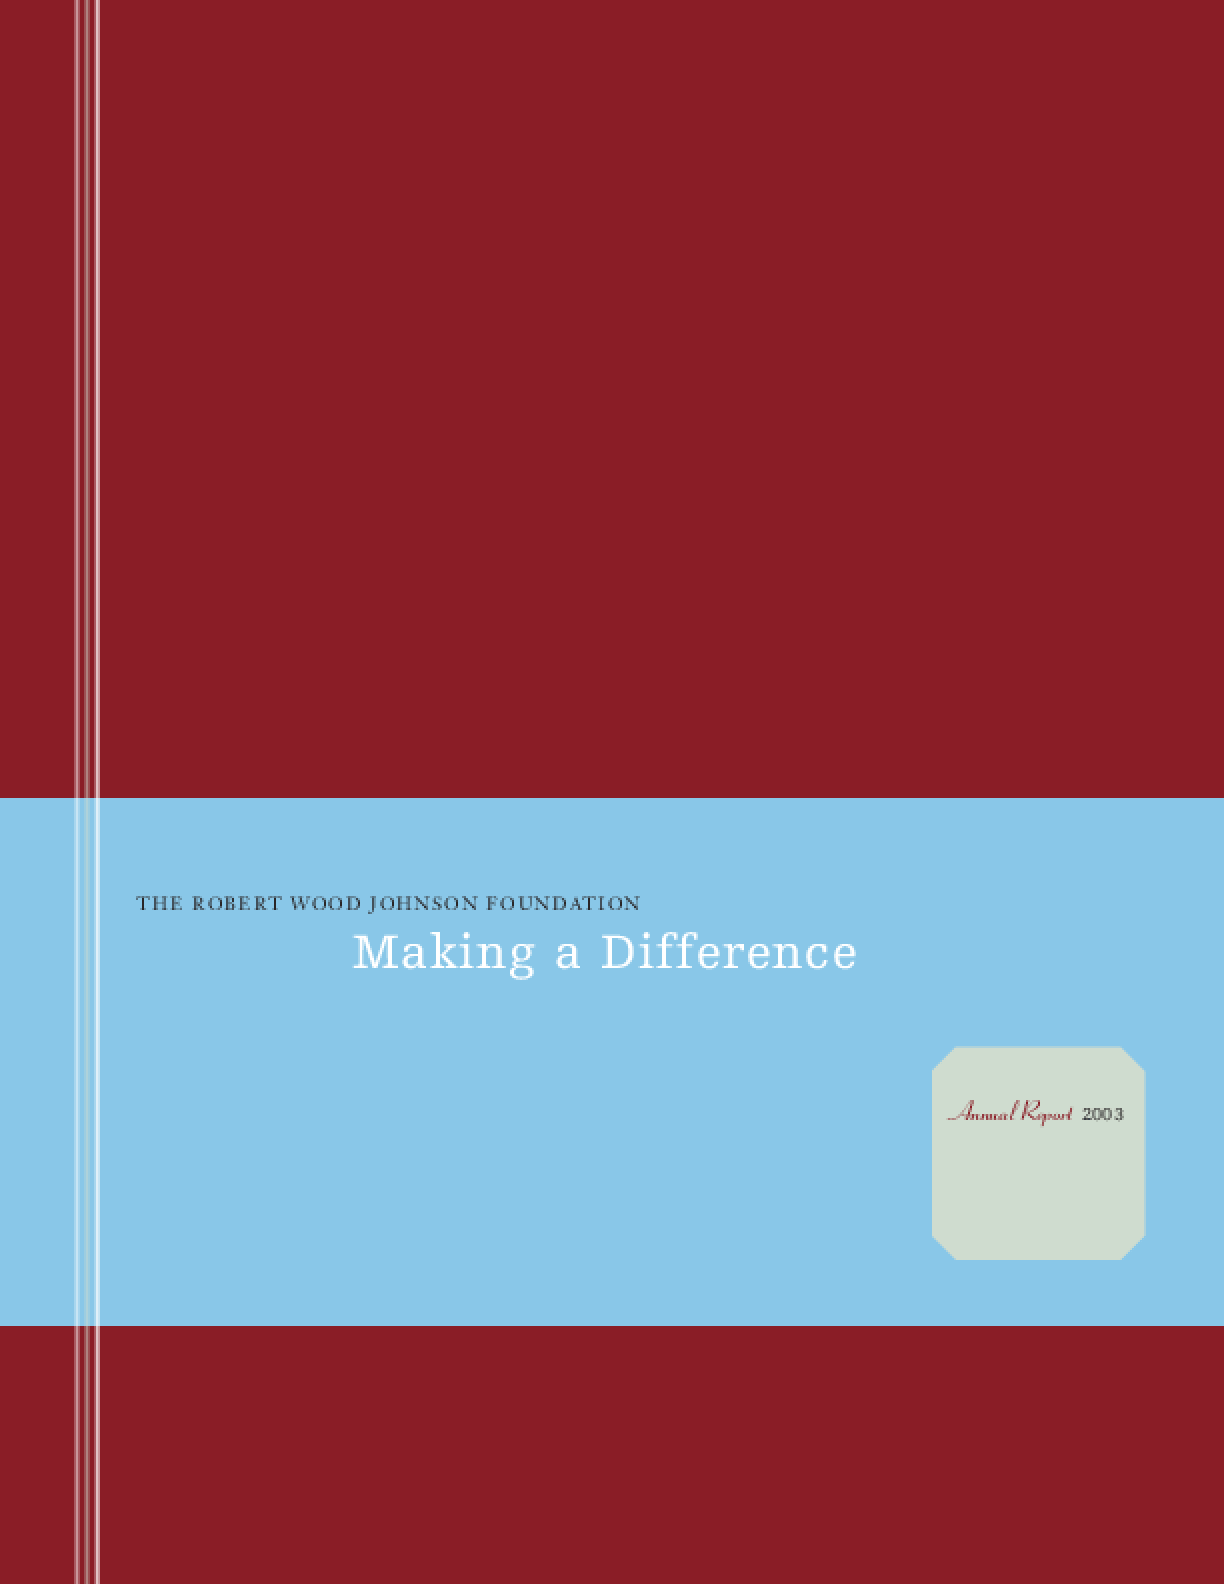 Robert Wood Johnson Foundation - 2003 Annual Report: Making a Difference